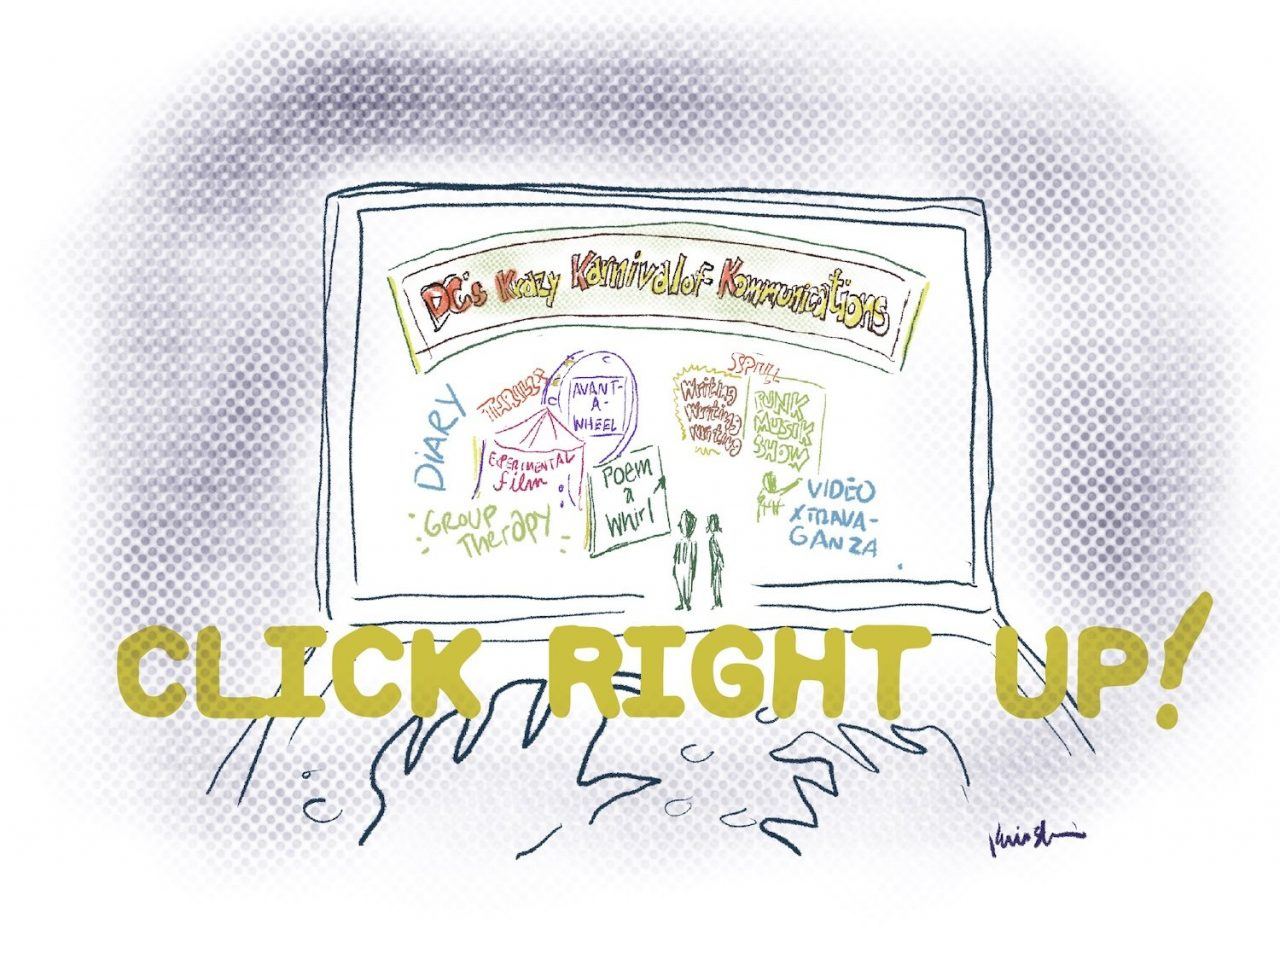 """A laptop screen shows a site called """"DC's Krazy Karnival of Kommunications"""", with a fair setting below the title. Within the fair attractions are words like """"Poem-a-Whirl"""", """"Experimental film"""", """"Punk Musik Show"""", etc. Below the drawing reads, """"CLICK RIGHT UP!"""""""